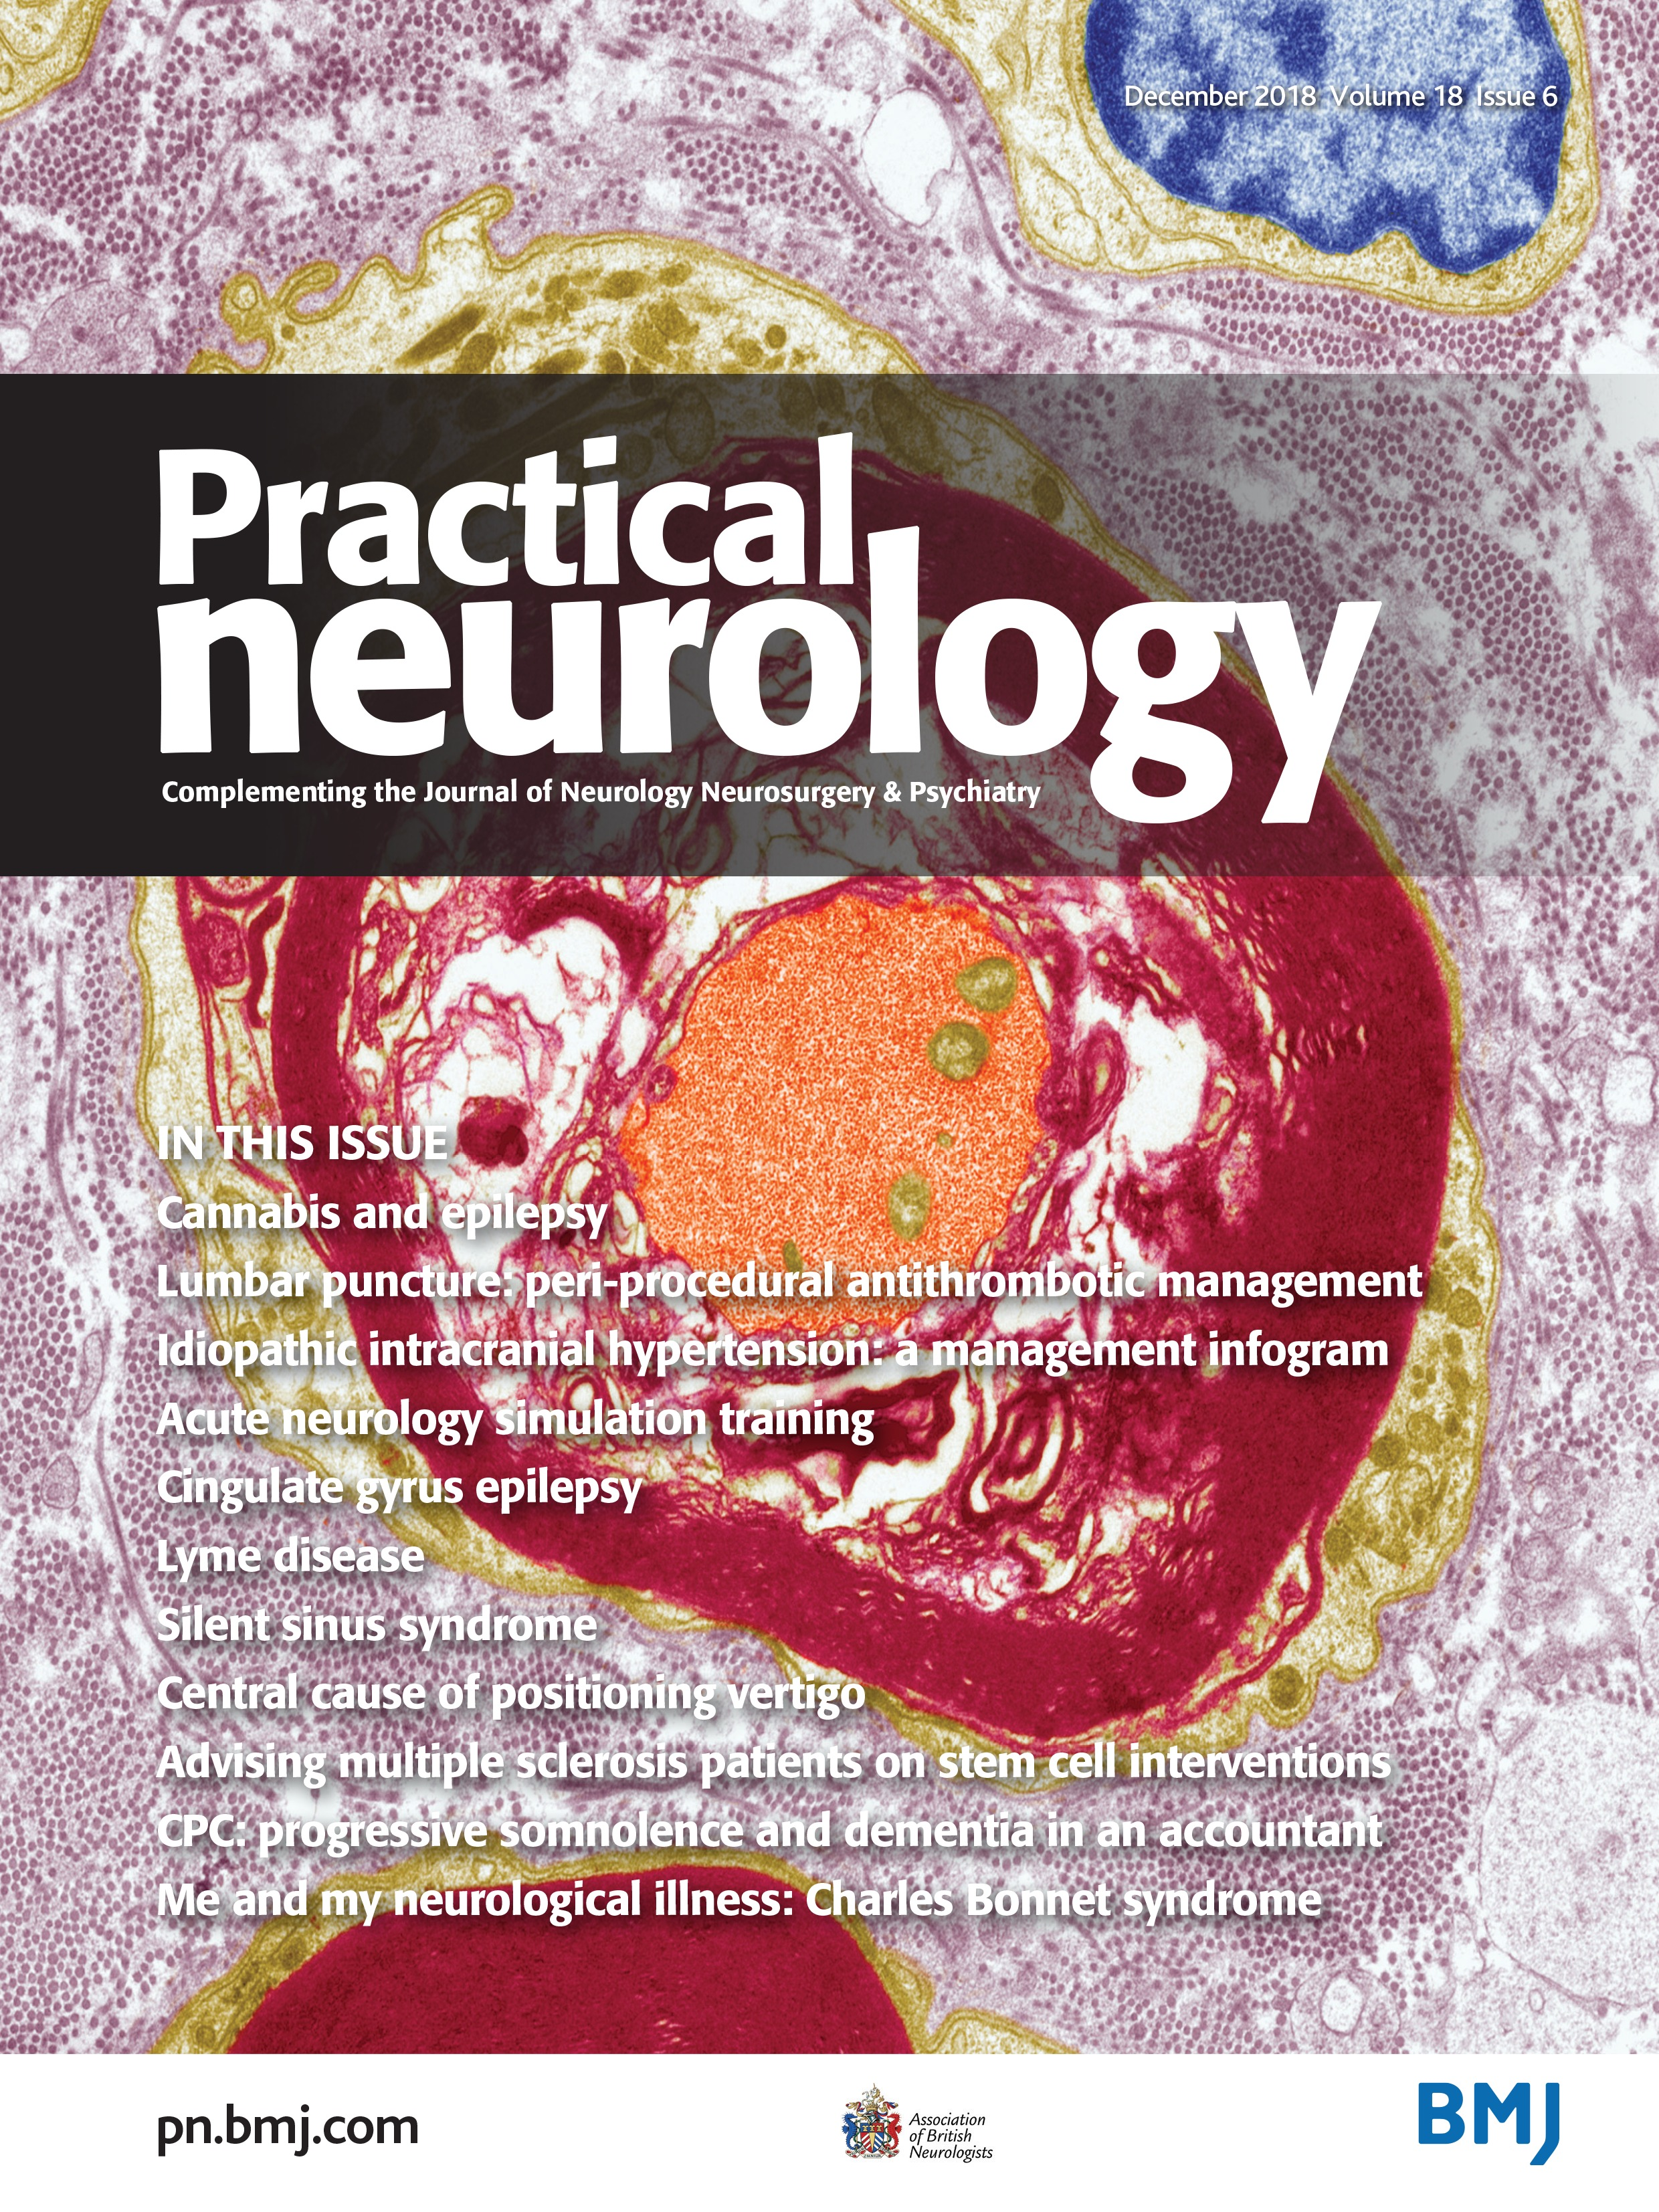 Clinicopathological case: progressive somnolence and dementia in an